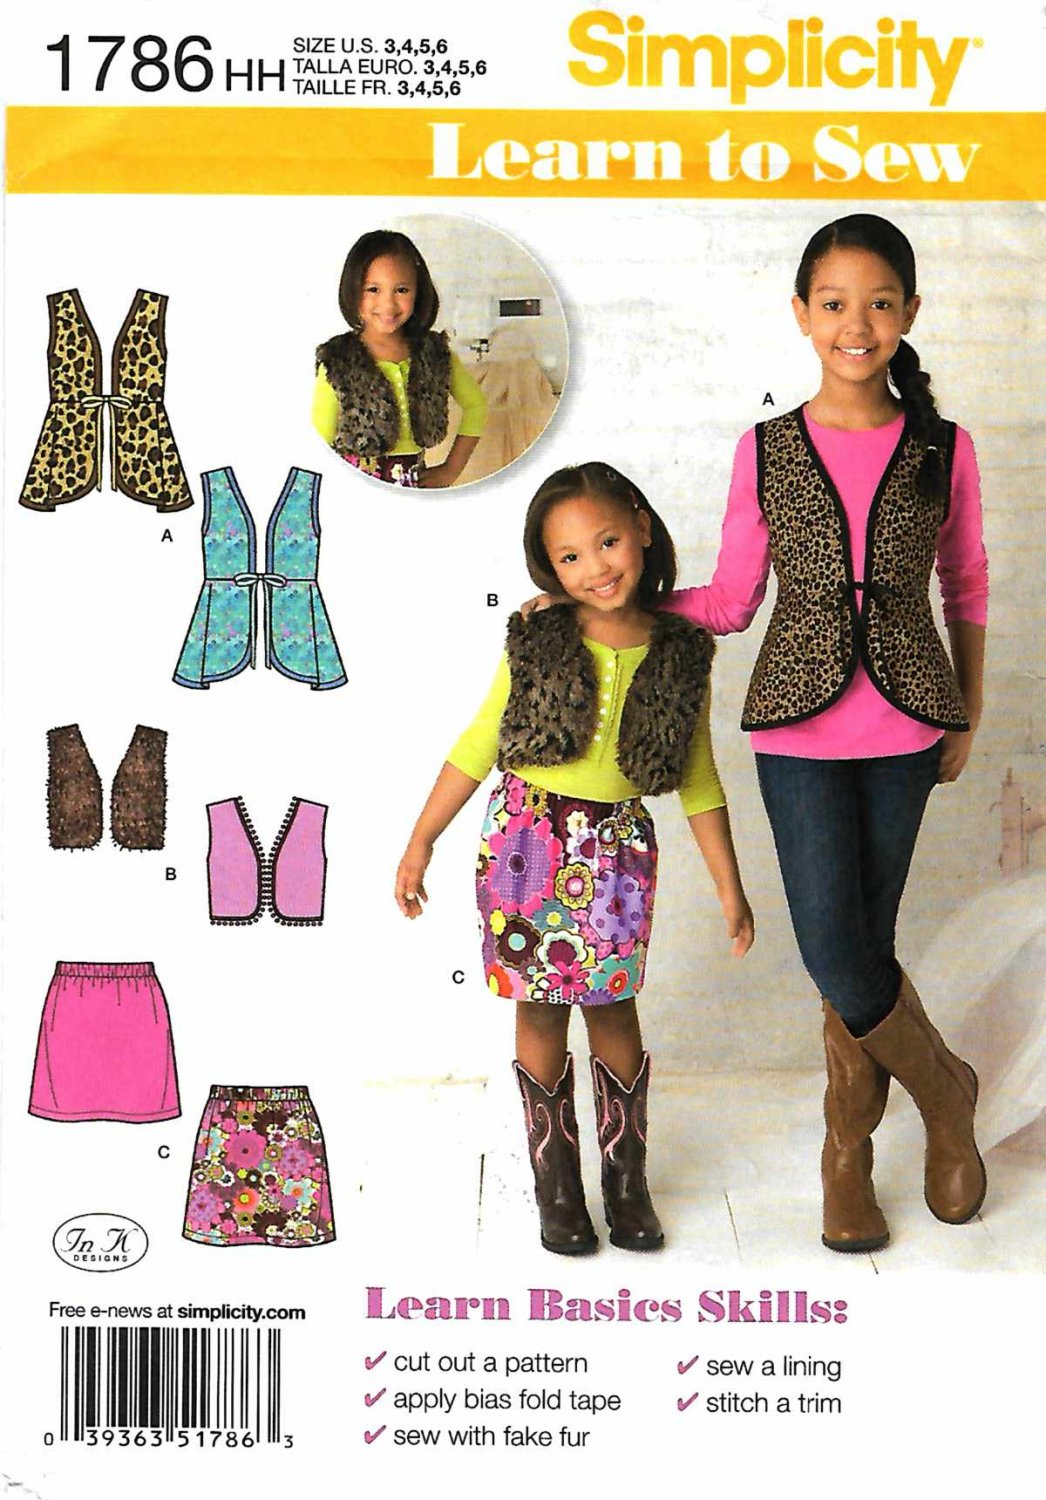 Simplicity Sewing Pattern 1786 Girl's Sizes 3-6 Learn-to-Sew Vest Skirt